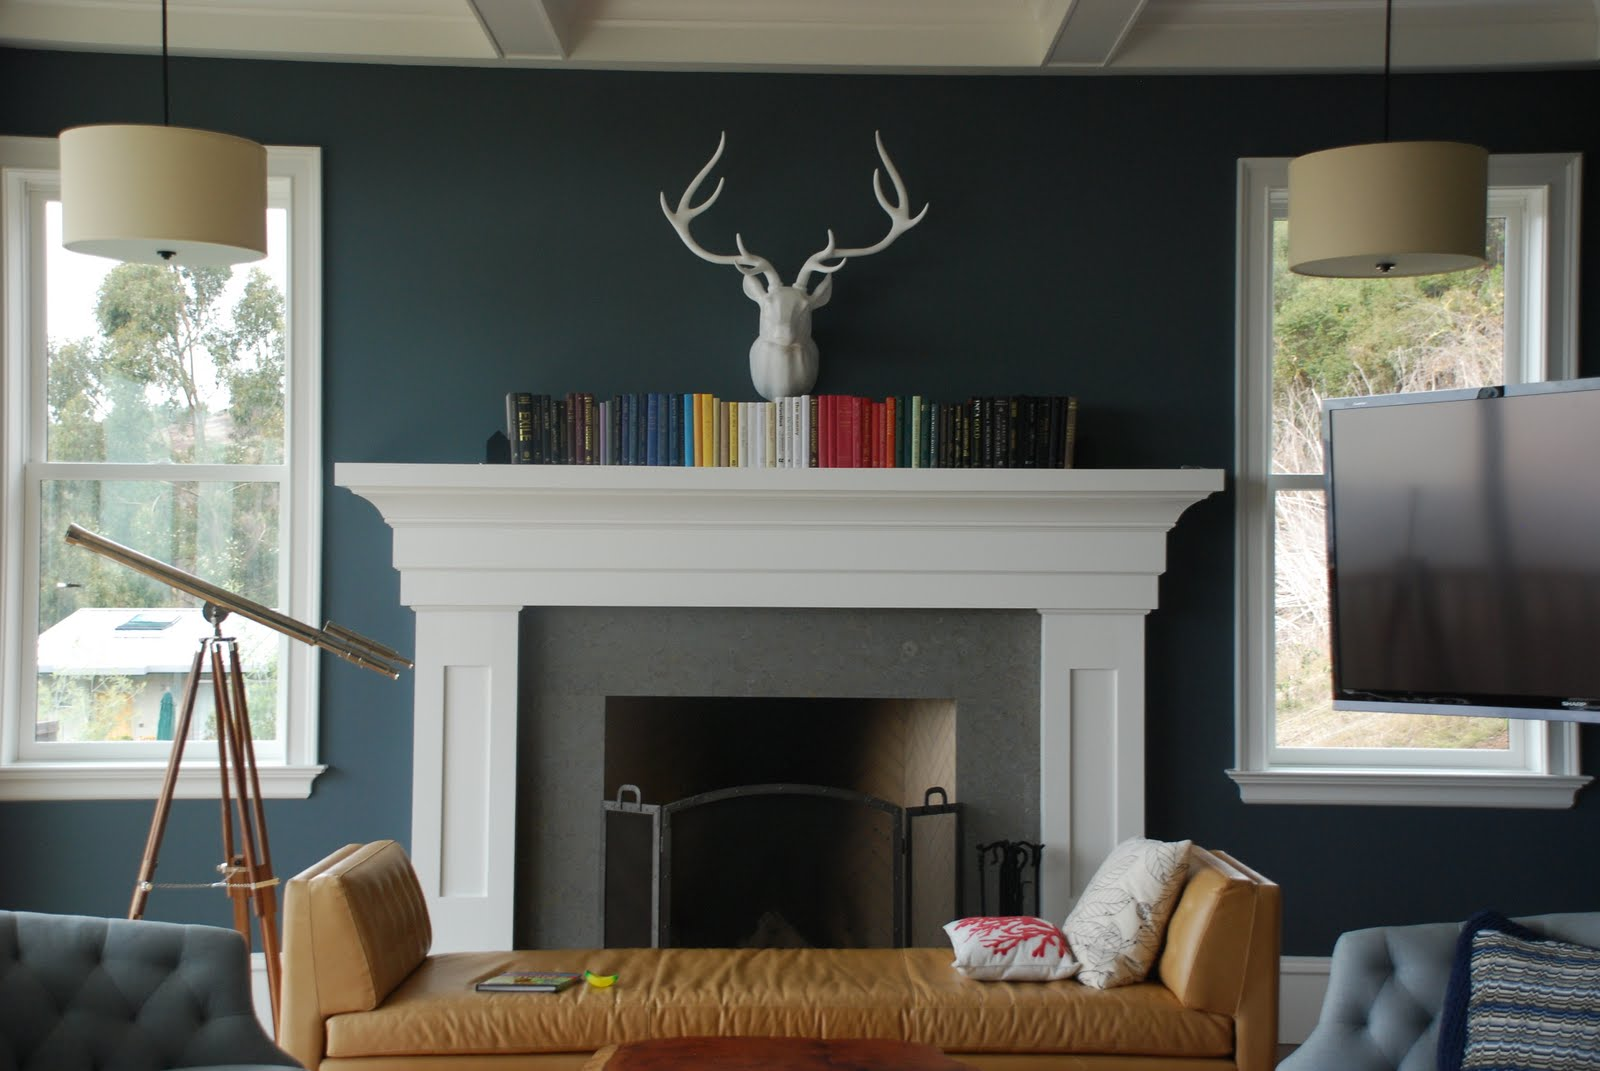 From Gardners 2 Bergers Reader Feature Bay Area Home Tour